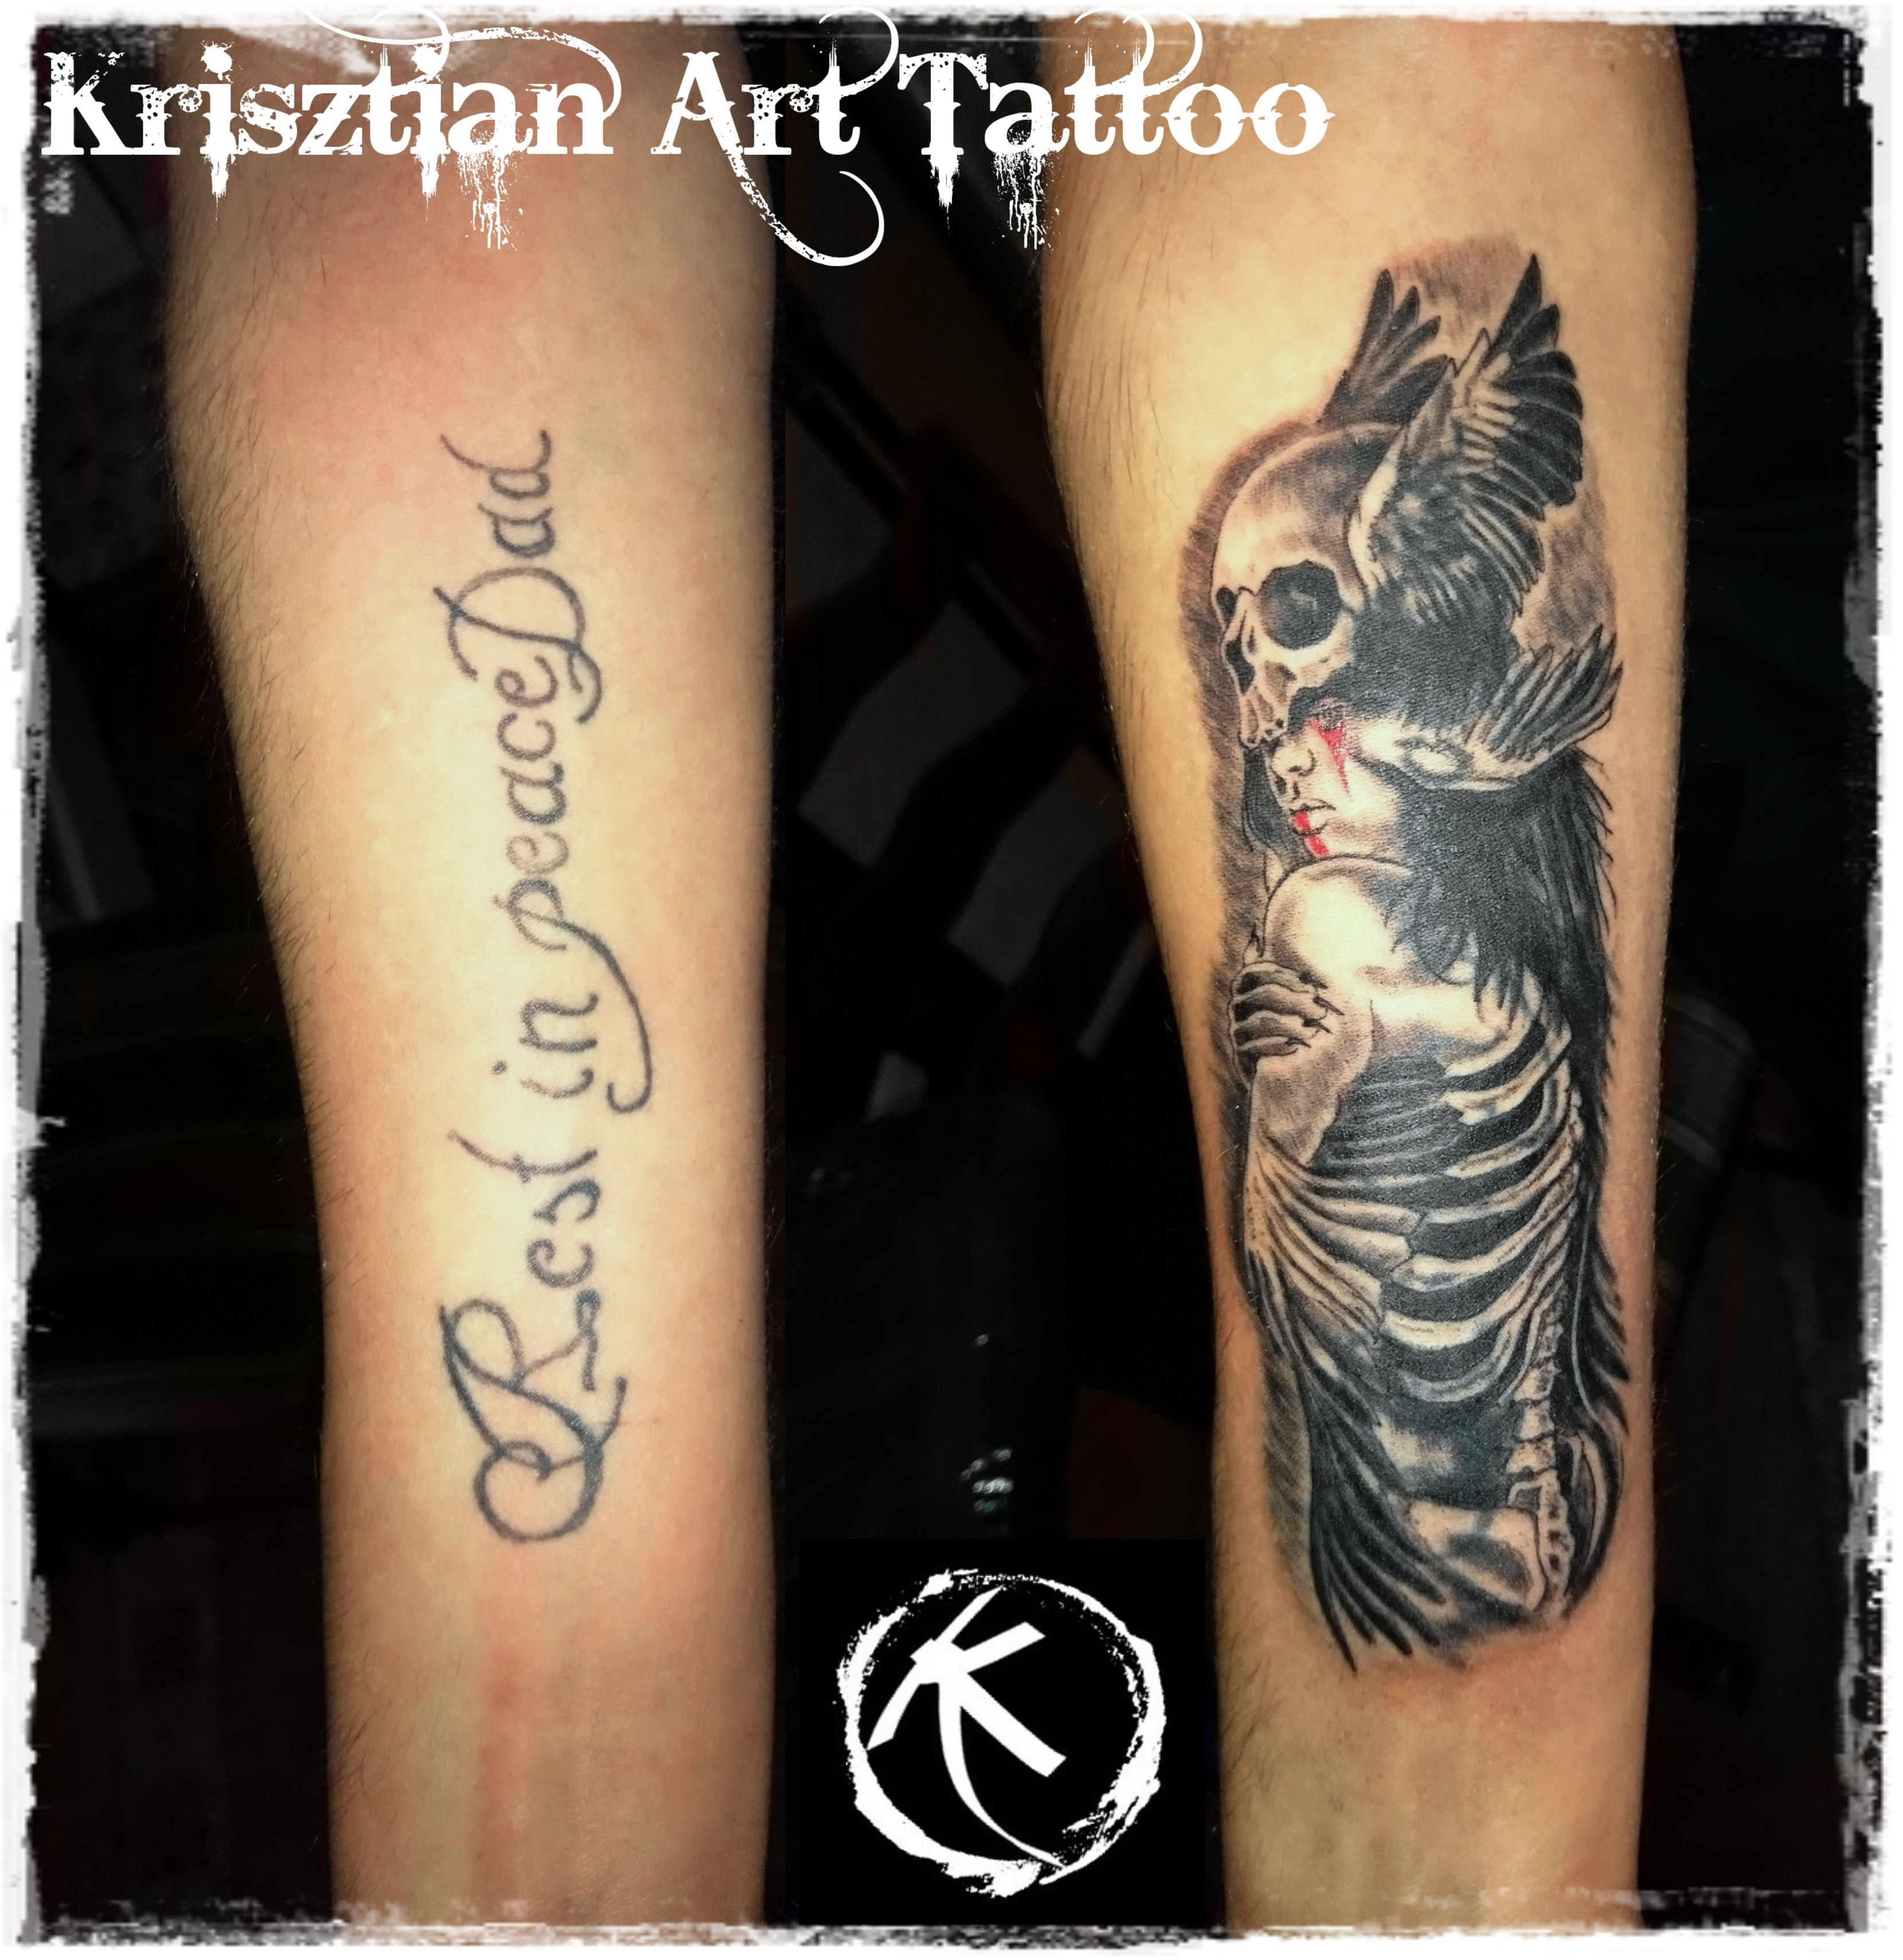 Krisztian Art Tattoo Cover Up Tattoo Forearm Skull And Girl in dimensions 3322 X 3422